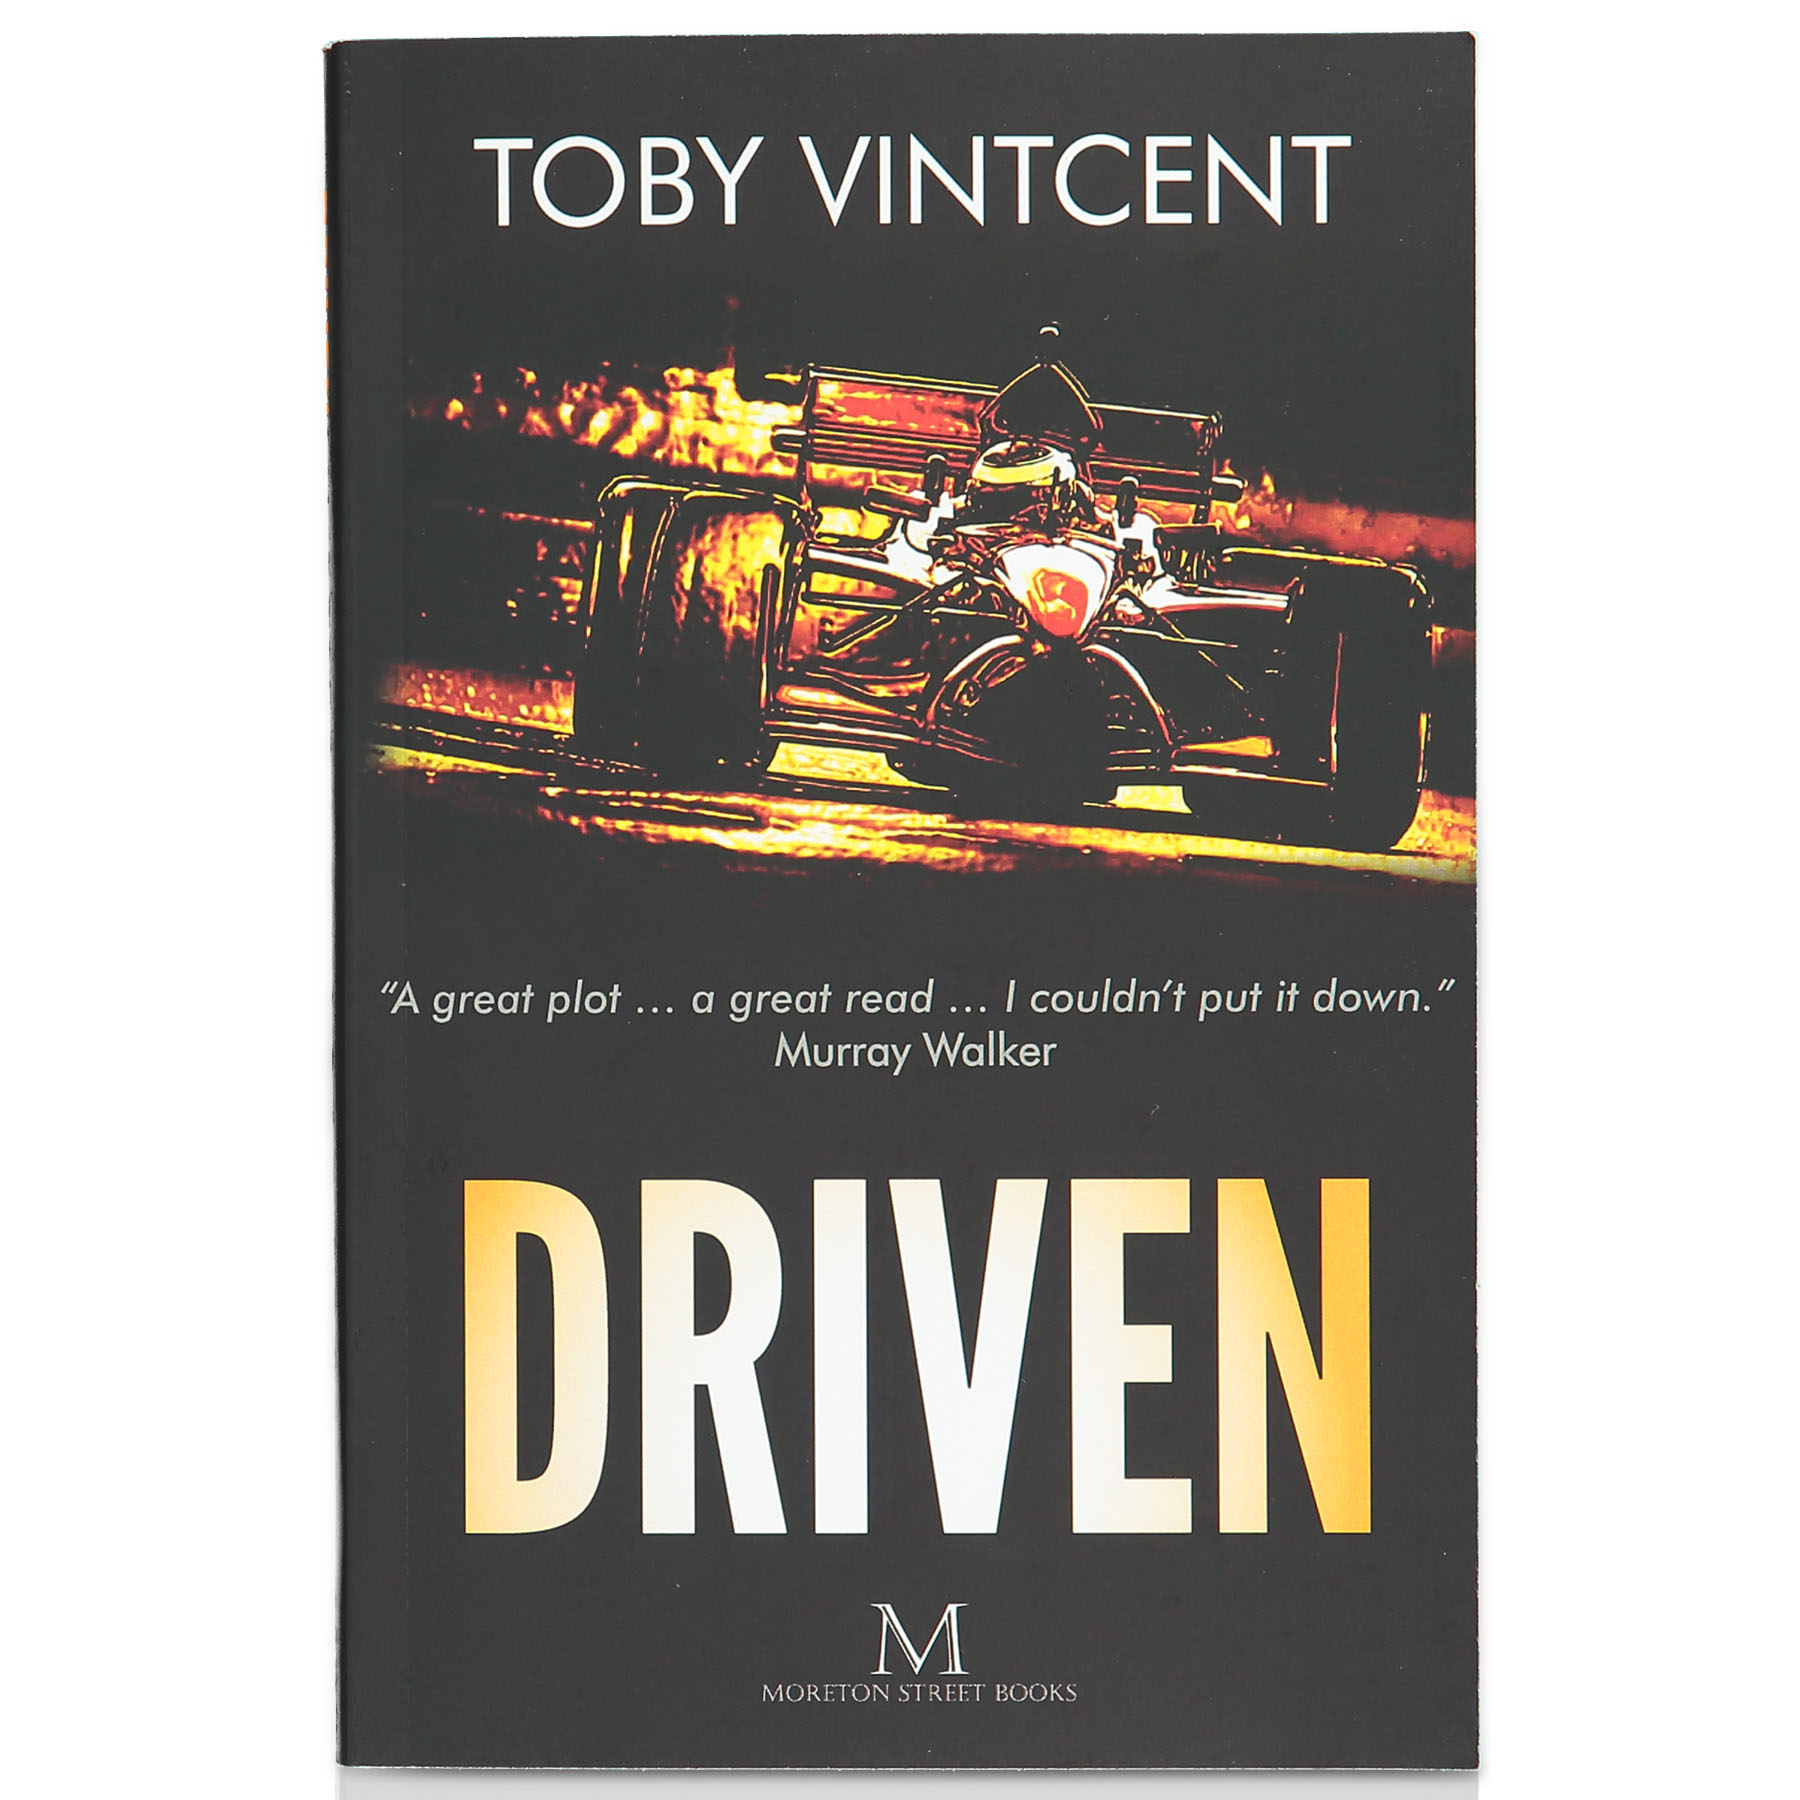 Formula One DRIVEN by Toby Vintcent